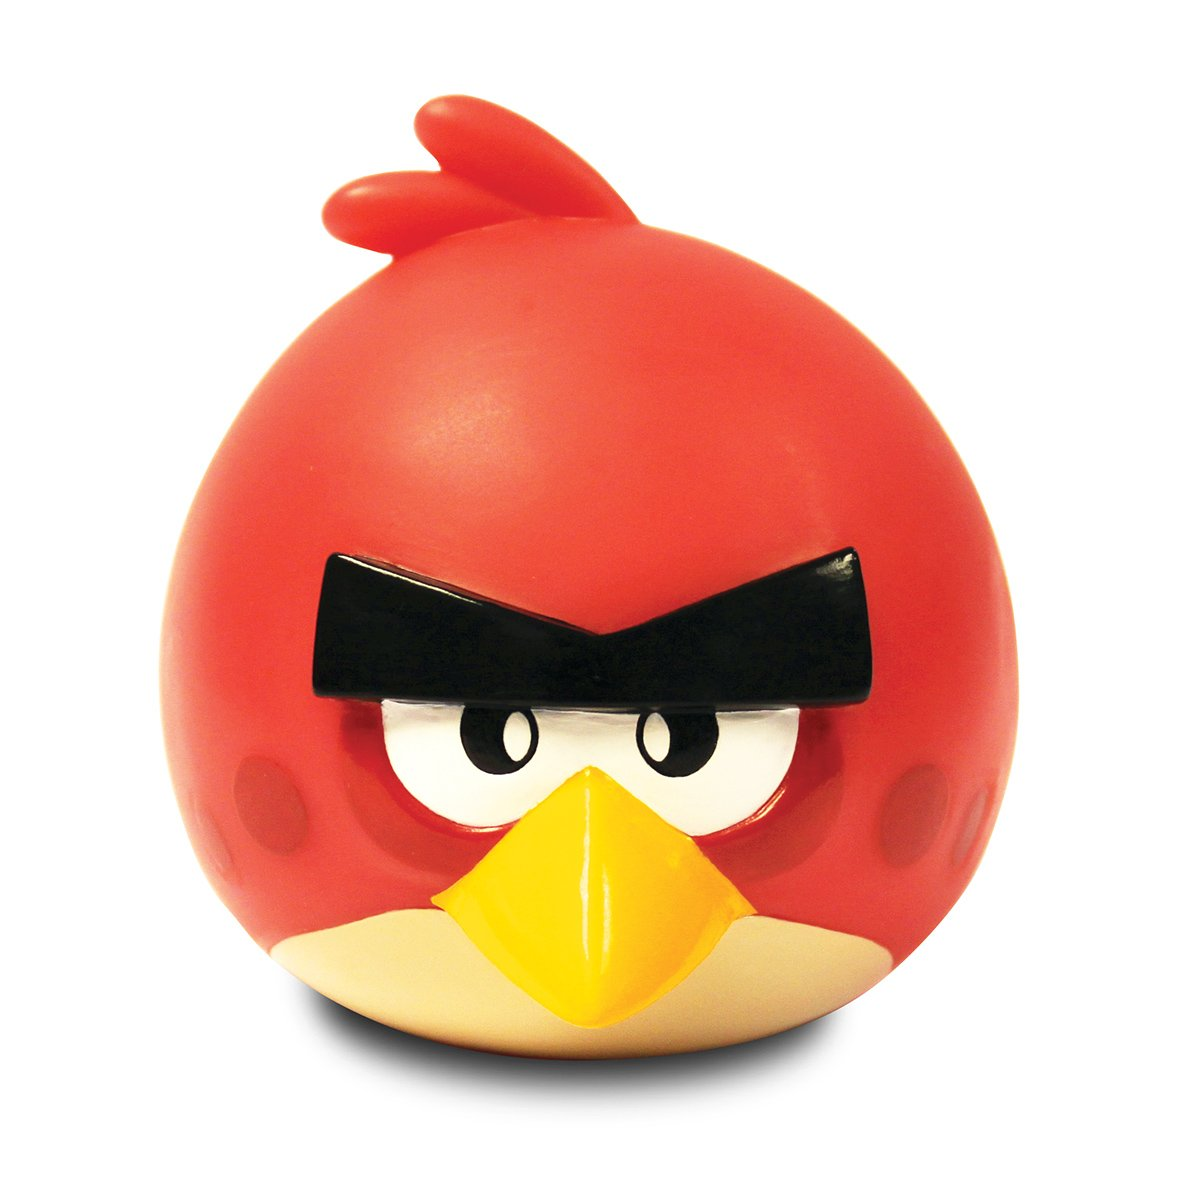 red angry bird images galleries with a bite. Black Bedroom Furniture Sets. Home Design Ideas